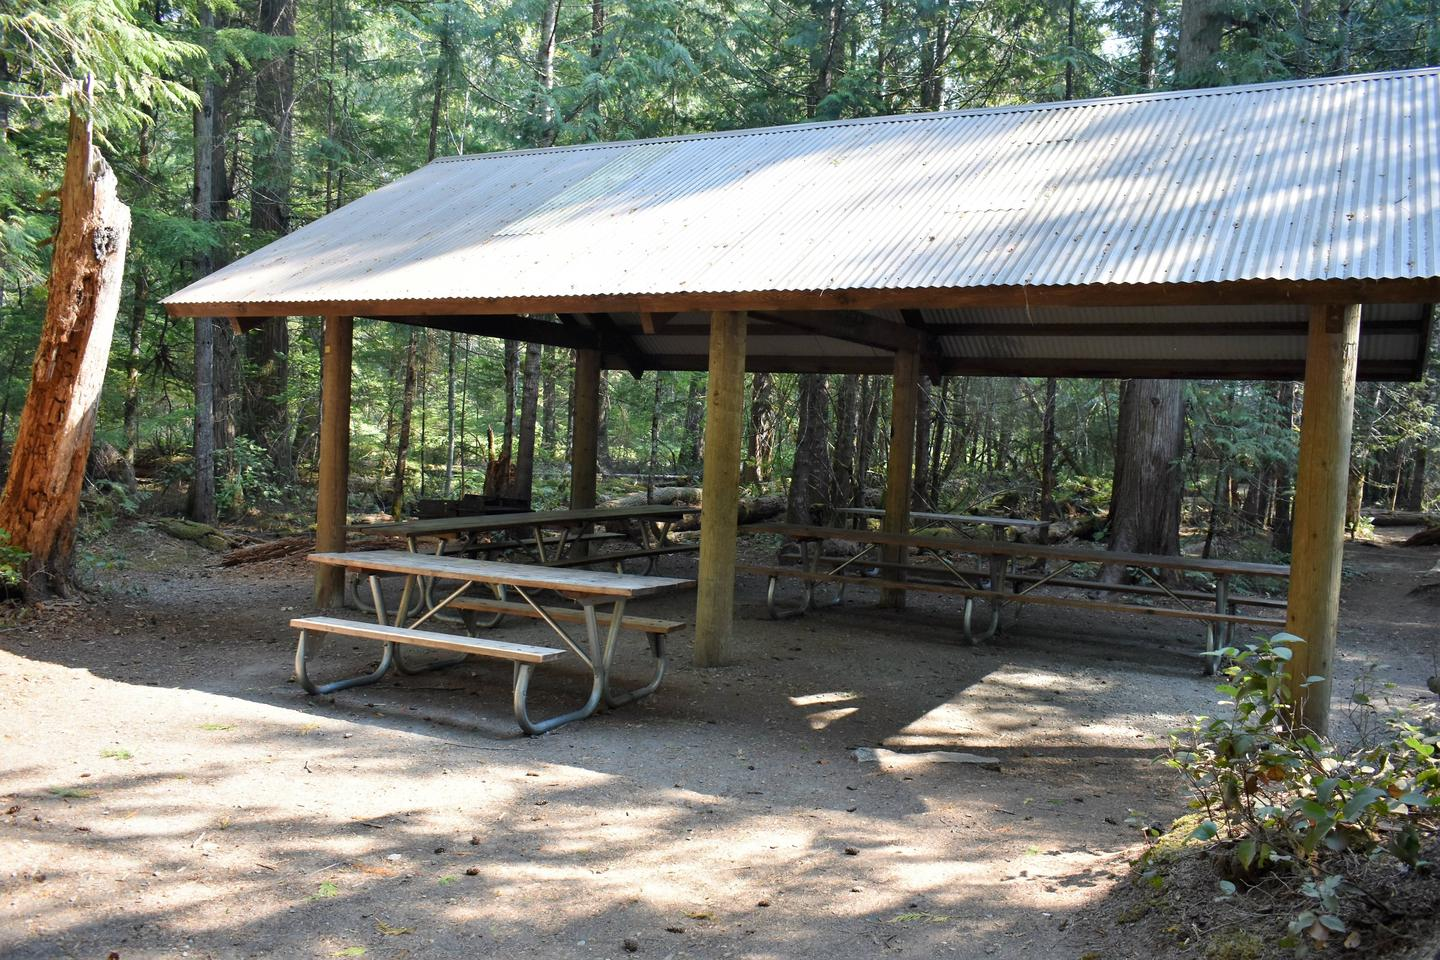 Group shelter which provides rain and sun protection to several picnic tables underneathView of group shelter B